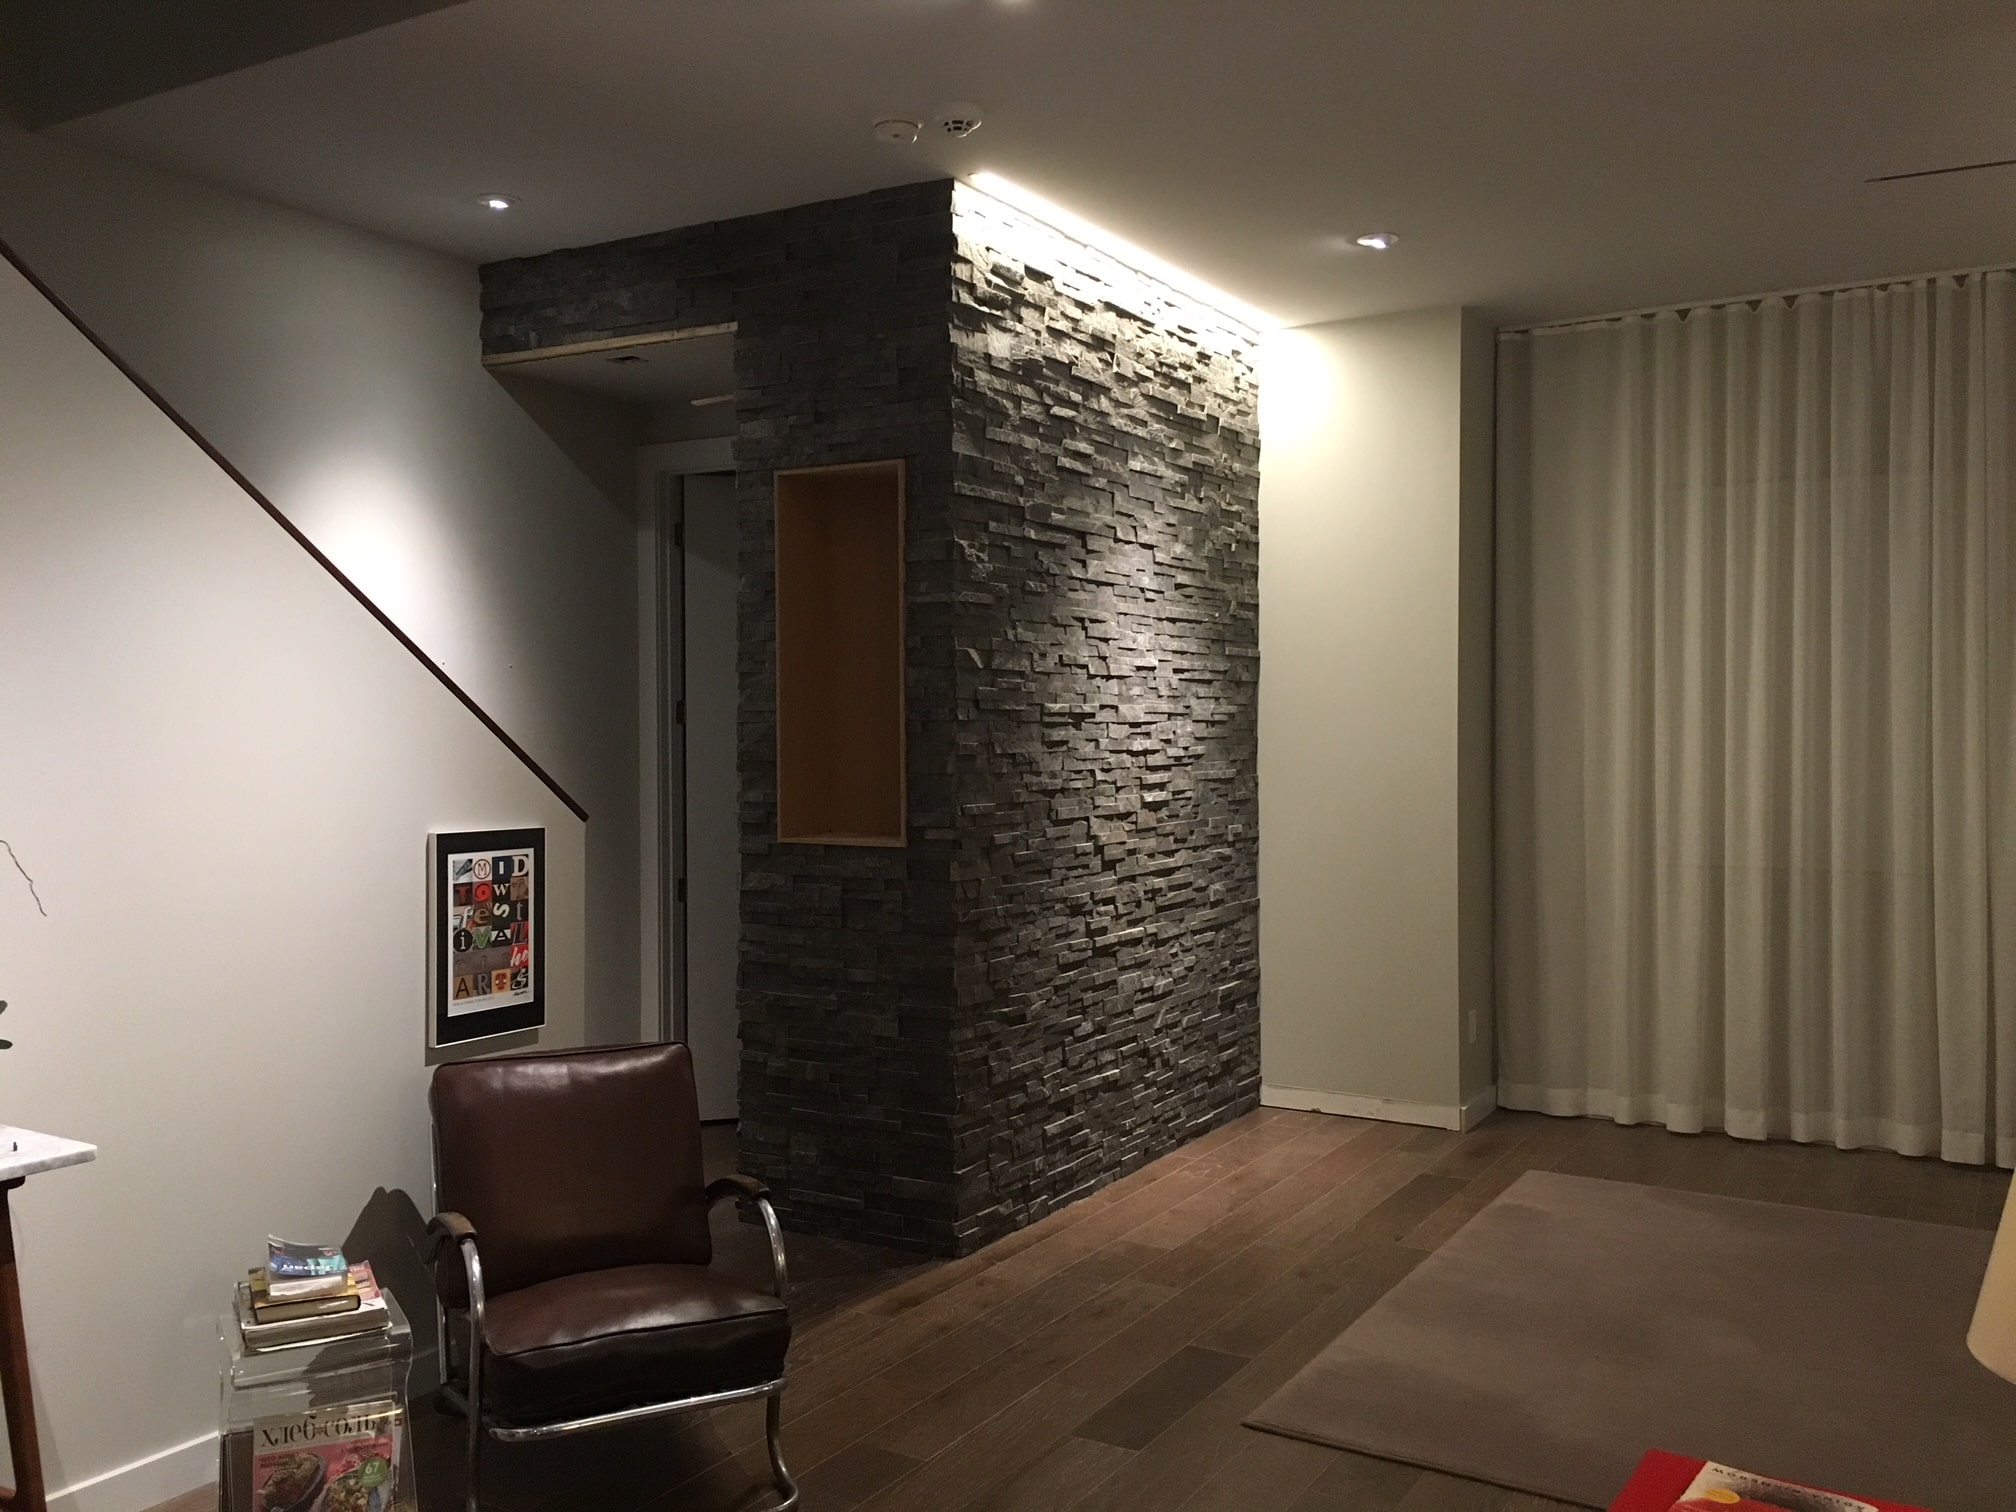 Stacked Stone Entryway Feature Wall project using Norstone Charcoal Standard Series Rock Panels